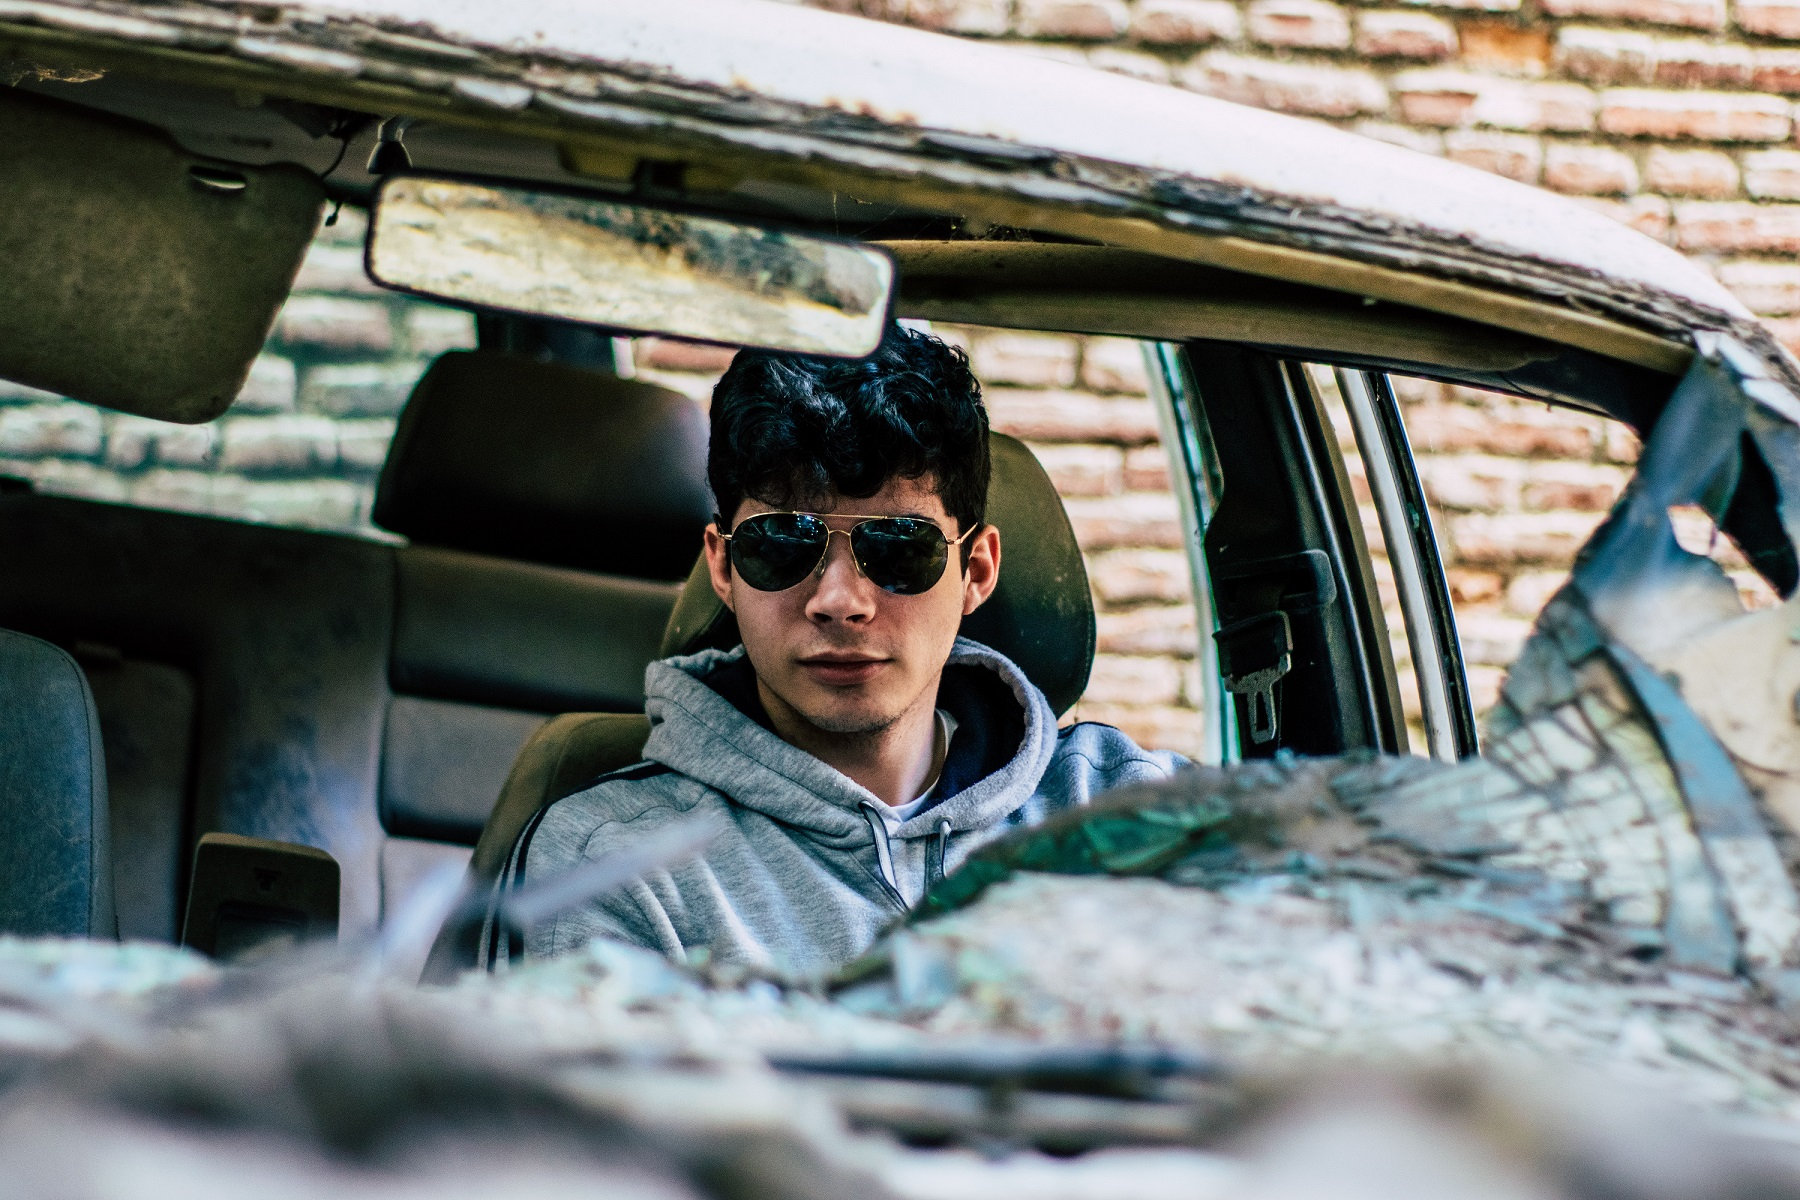 Boy in car with a smashed windshield and ruined interior fabric